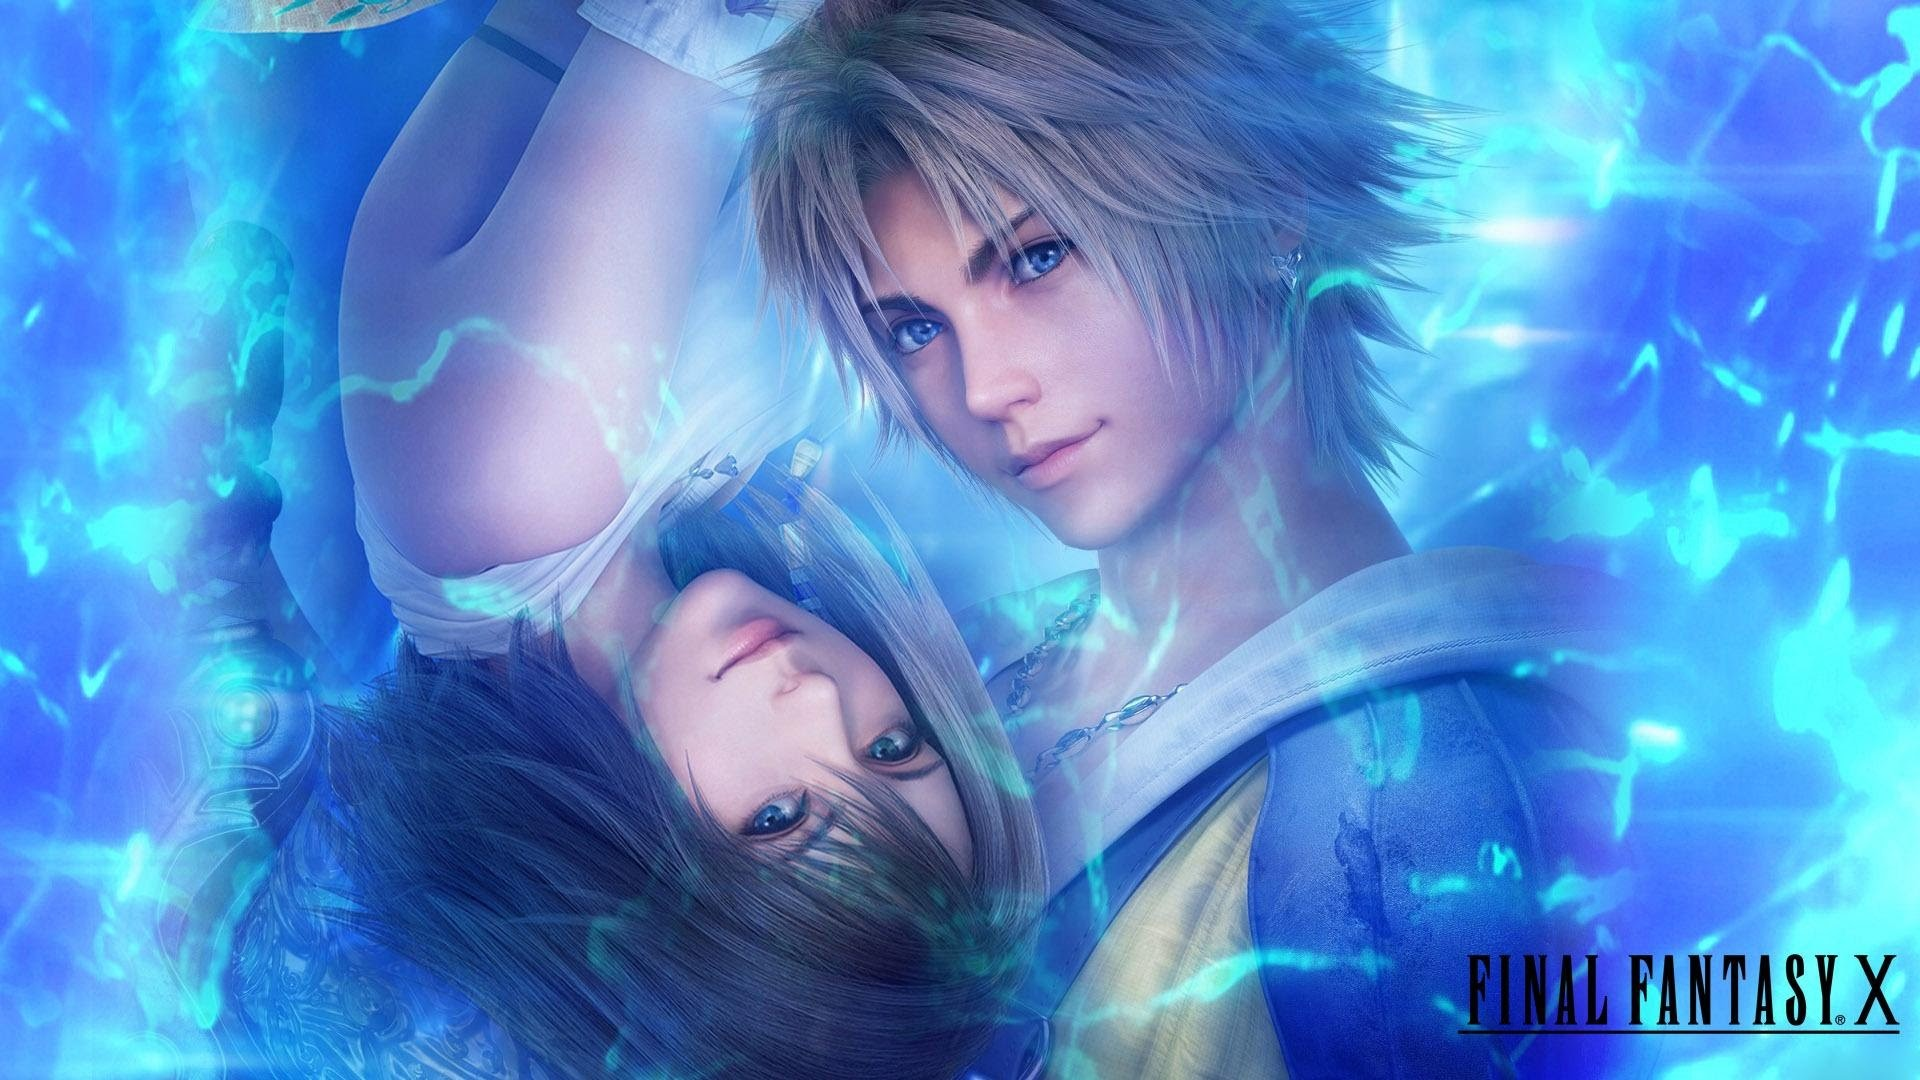 Final Fantasy X Wallpapers HD (77+ images)